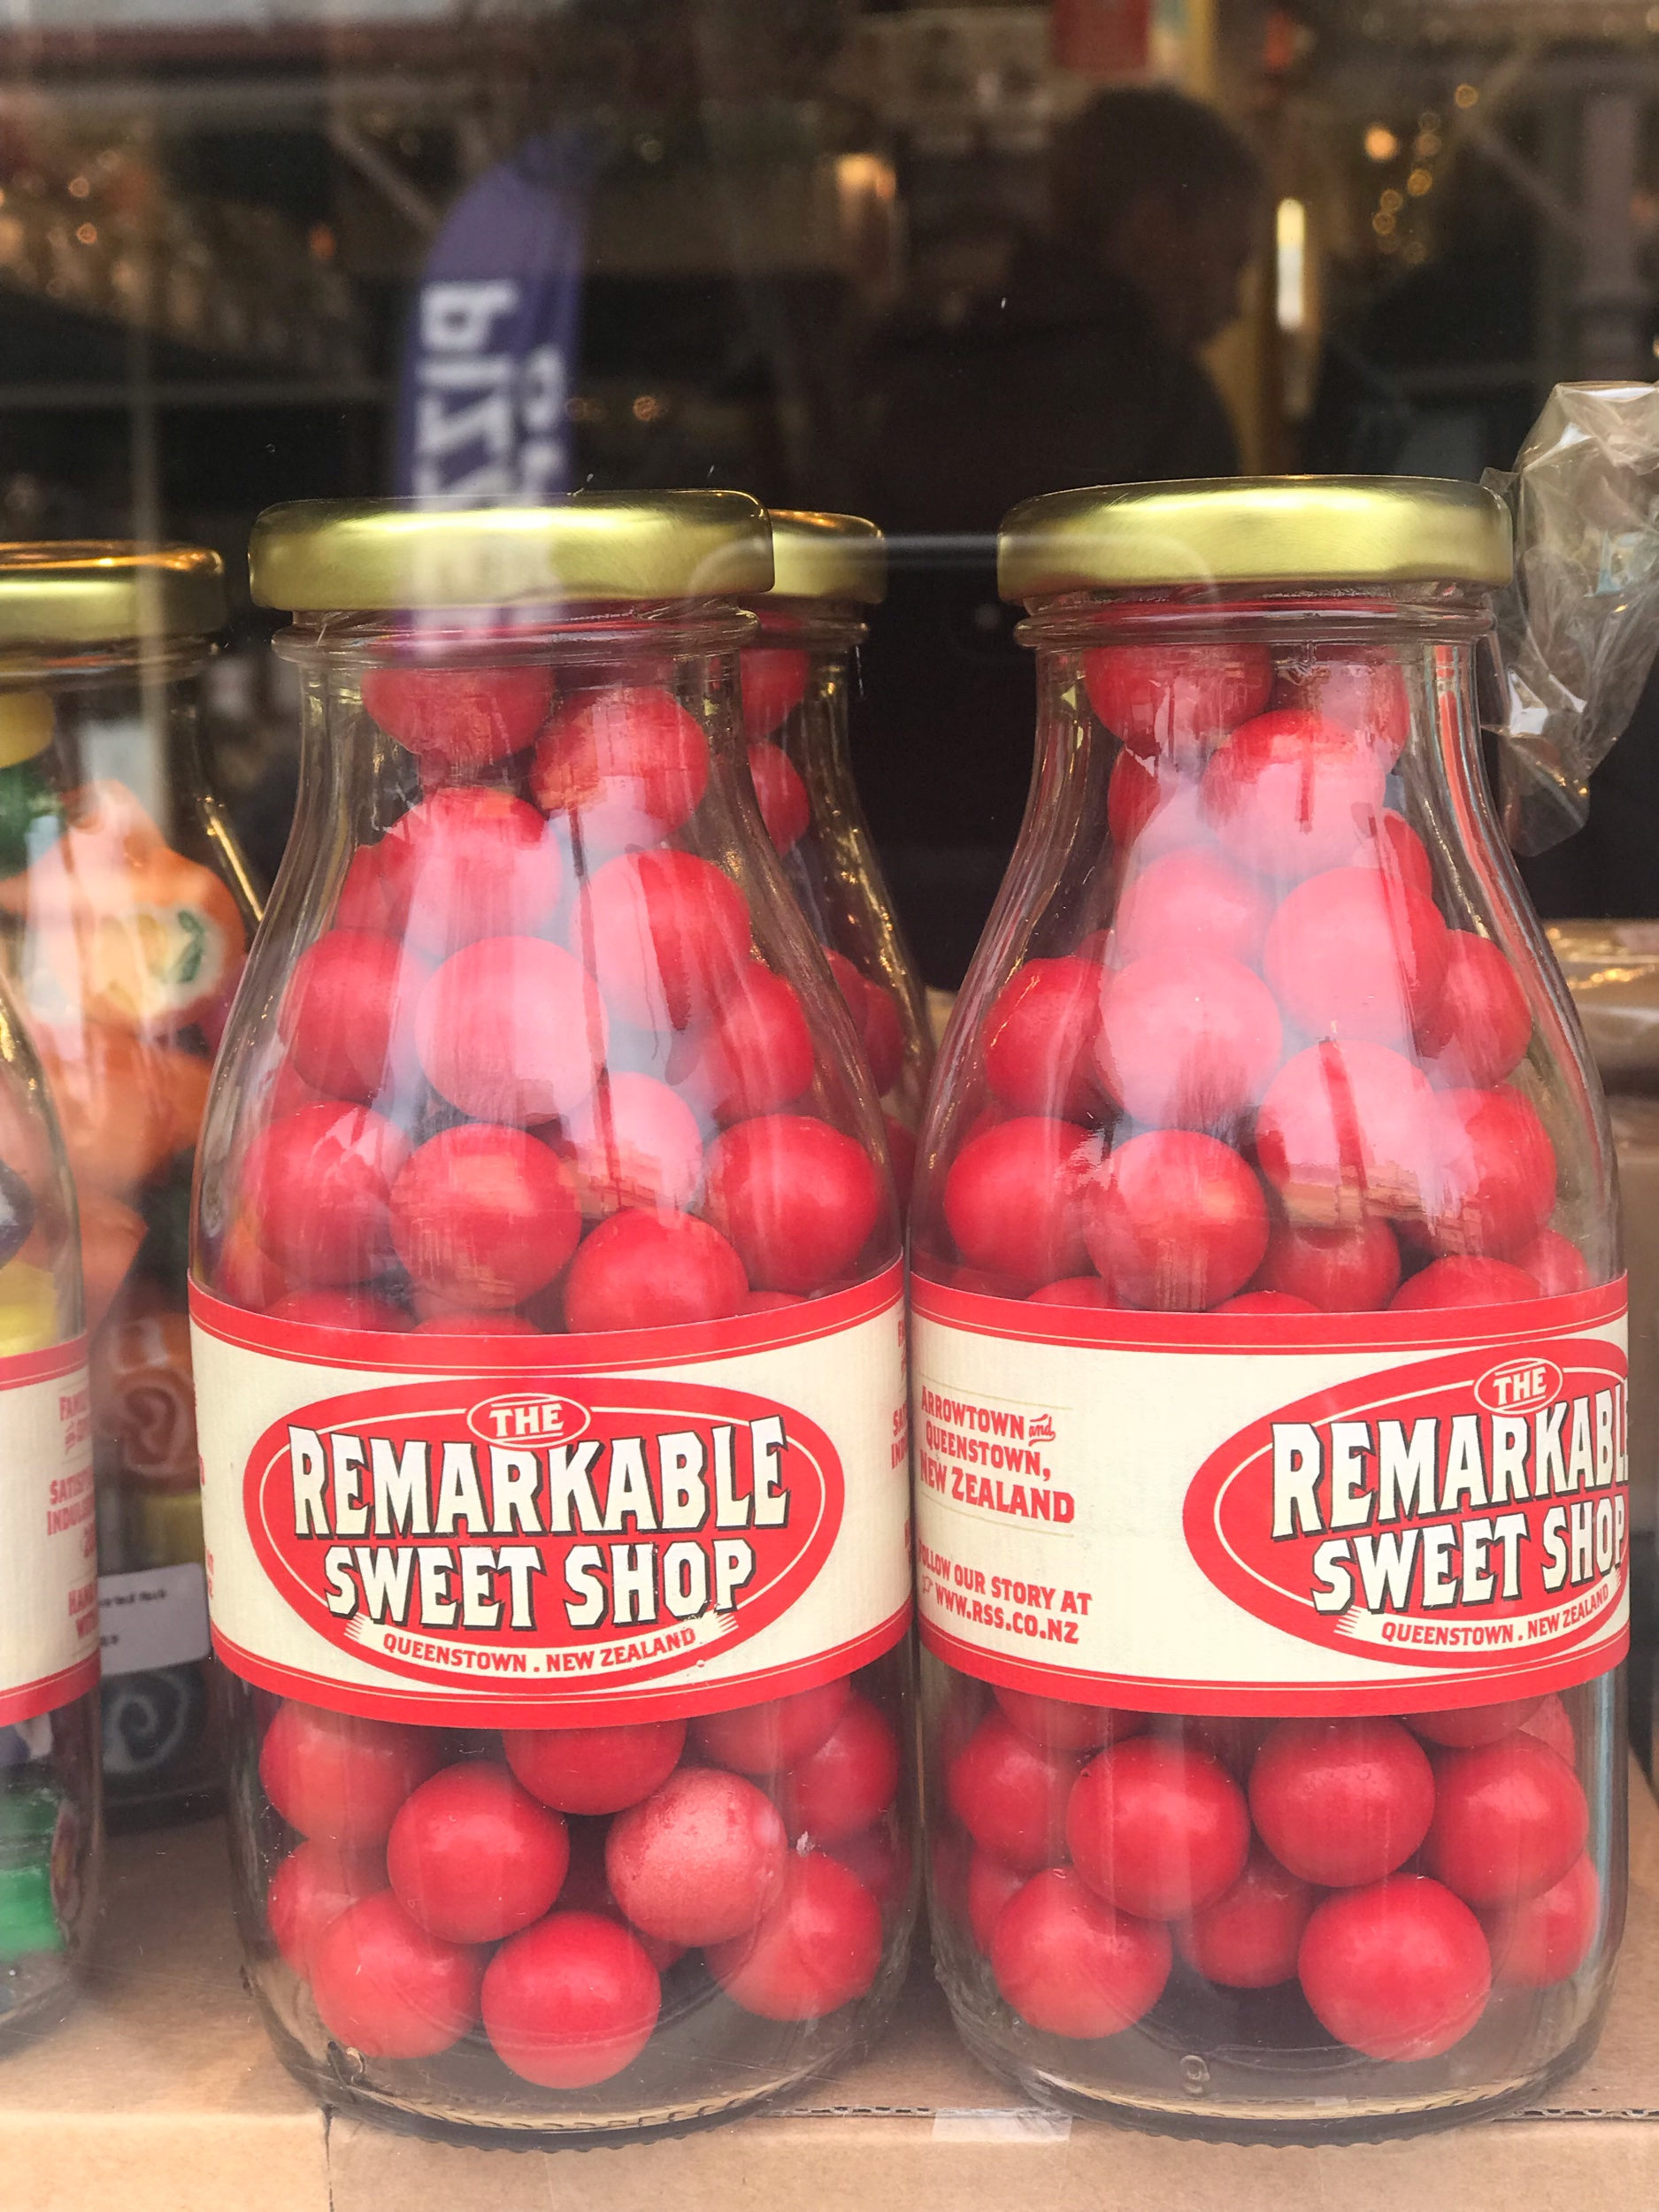 Remarkable sweets of Arrowtown (image by Jacqui Gibson).